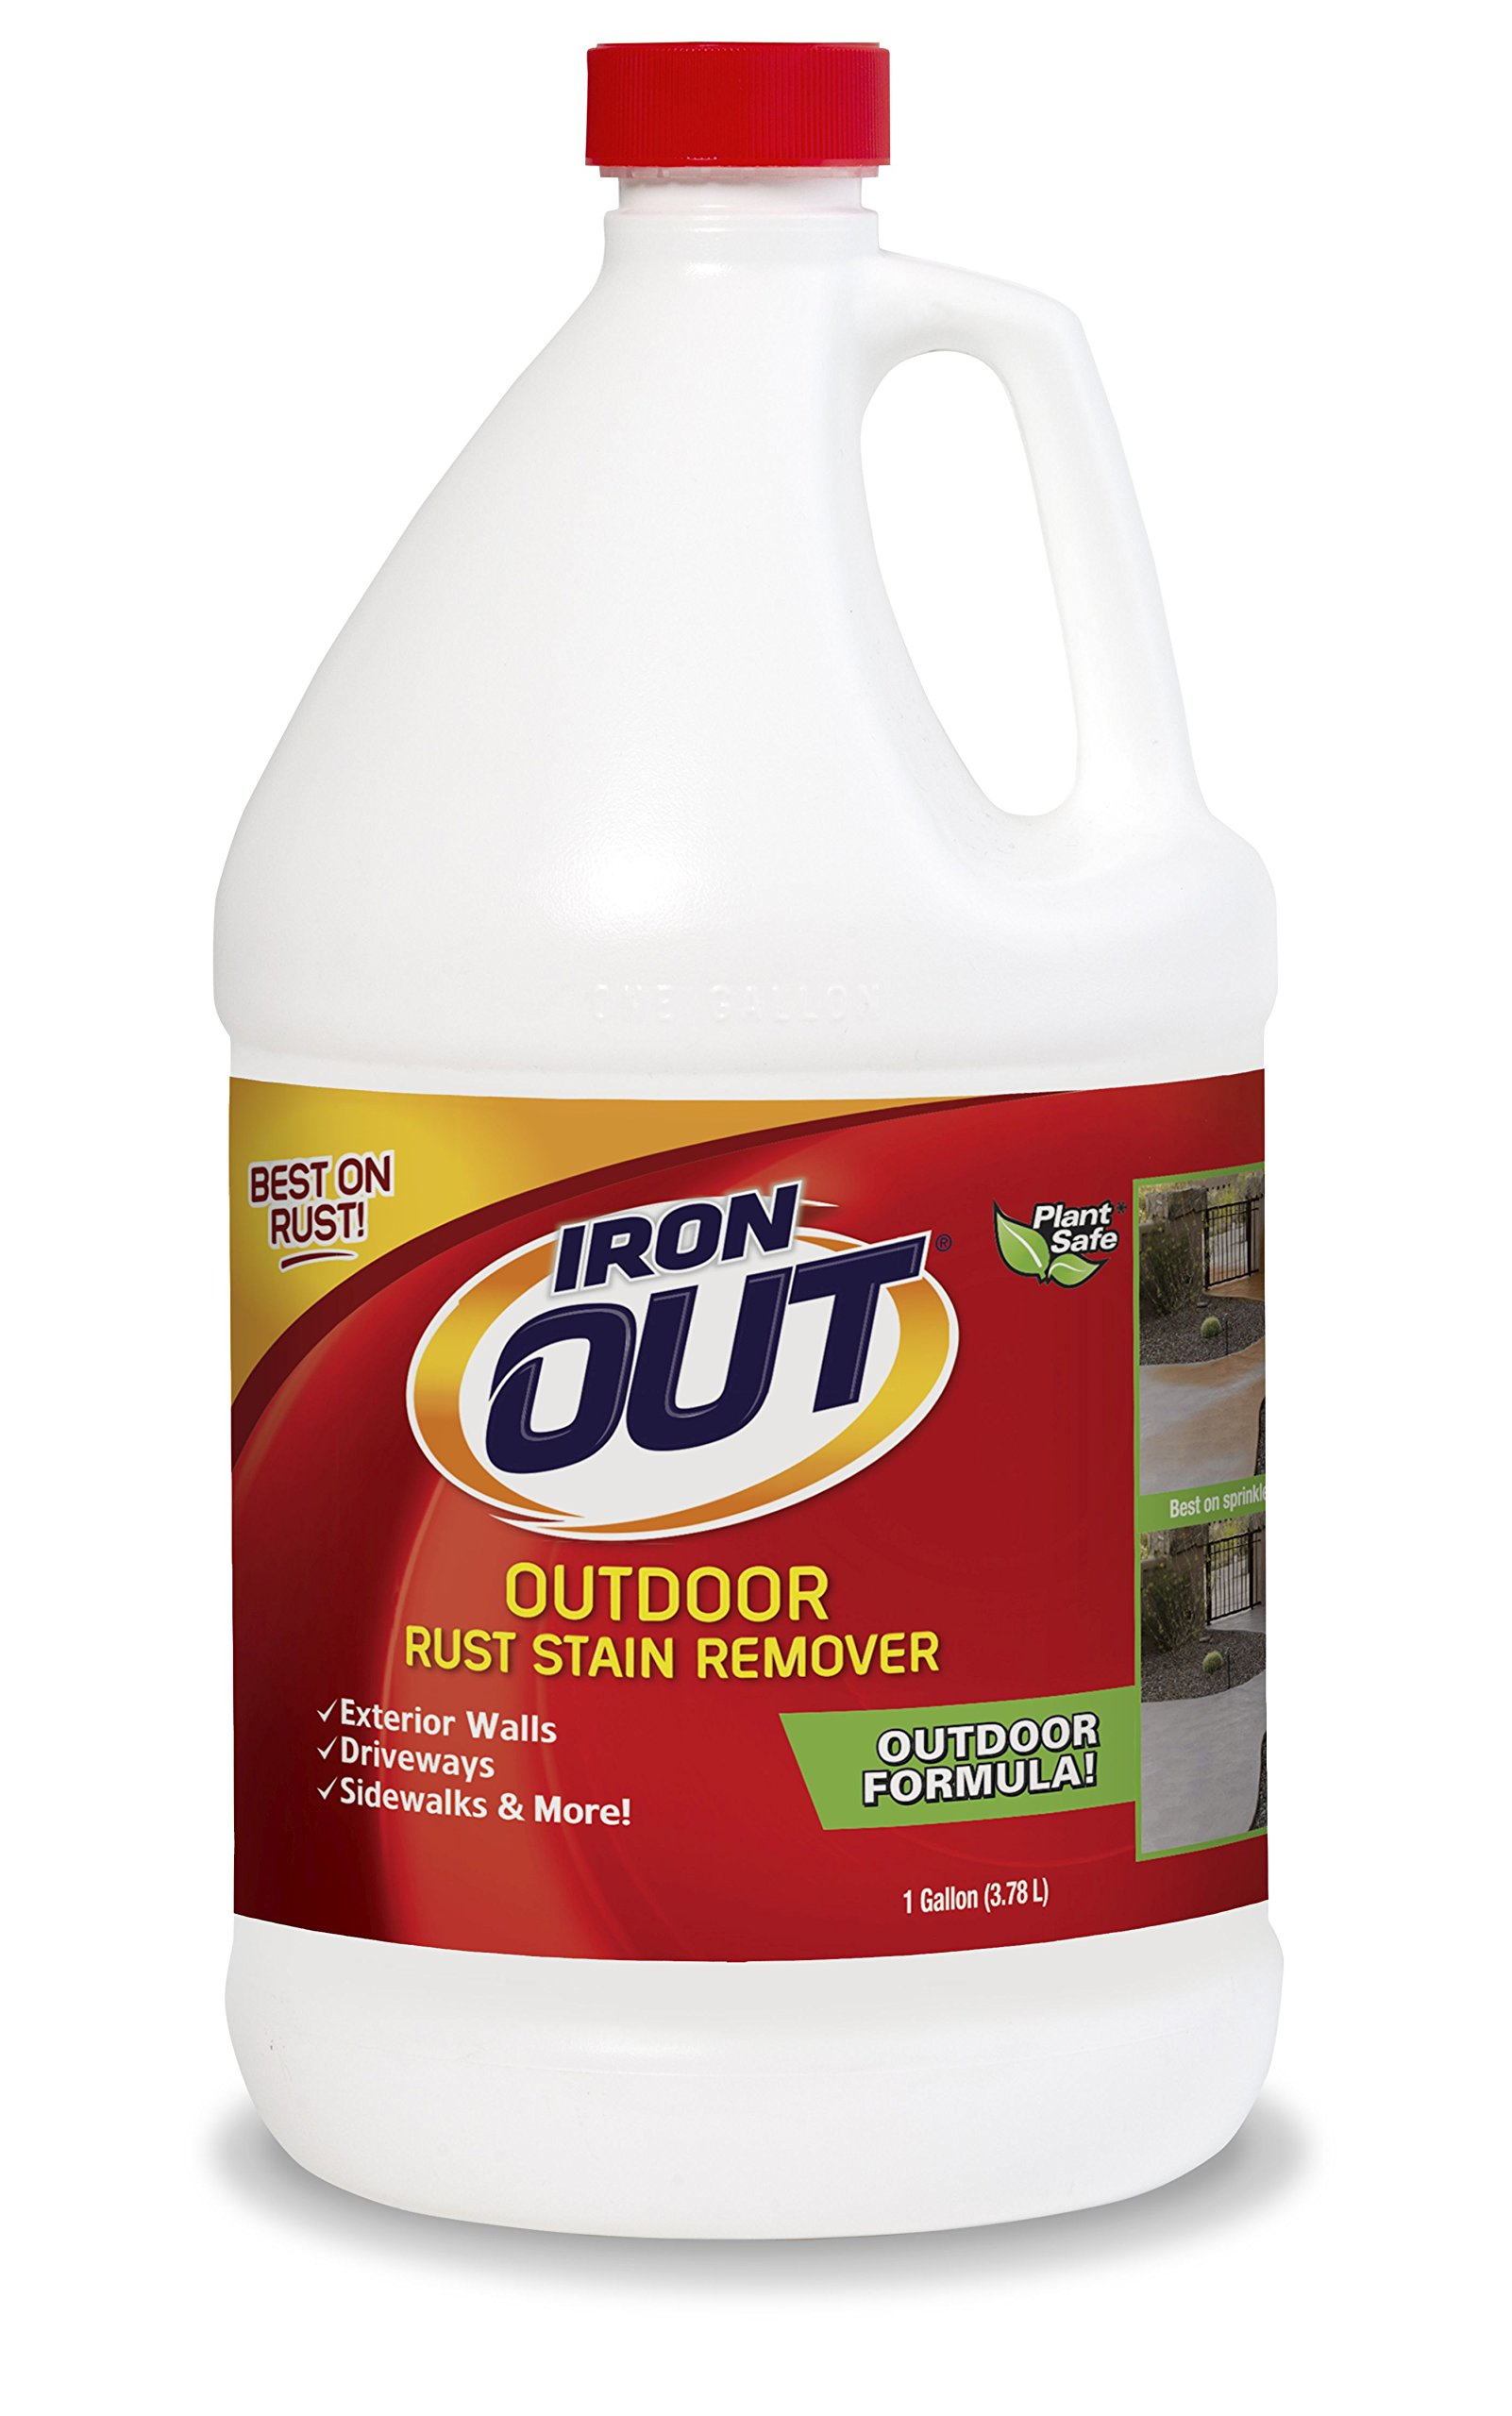 Iron OUT Outdoor Rust Stain Remover, 1 Gallon, 4 Pack by Summit Brands (Image #1)